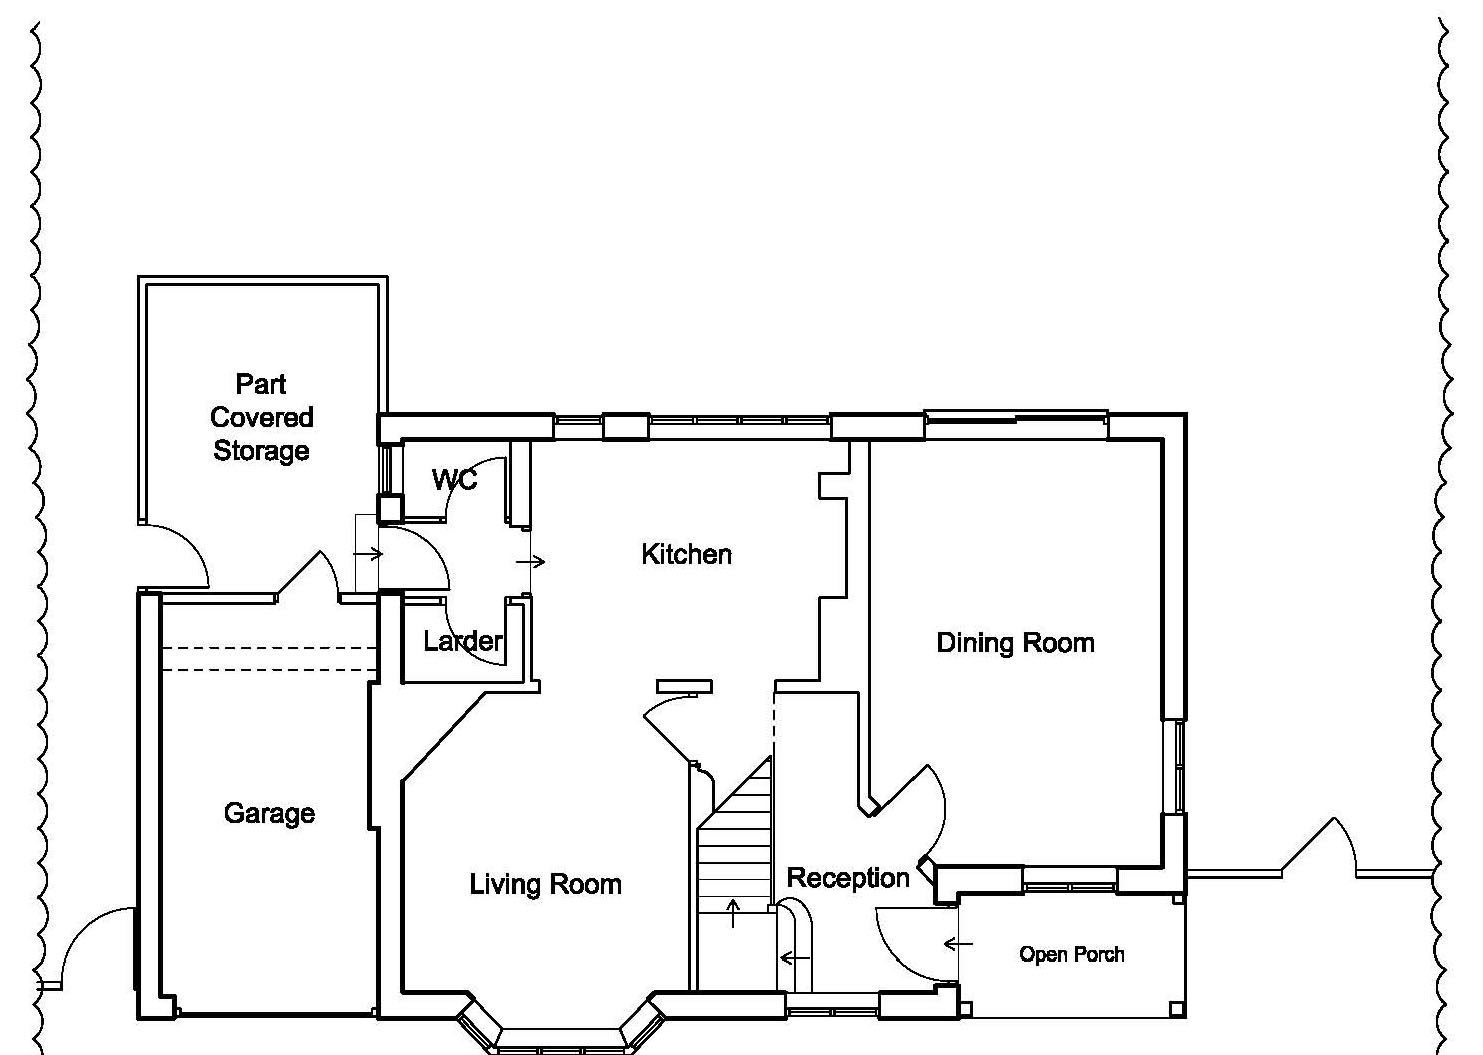 As Existing Floor Plan by CPA Design